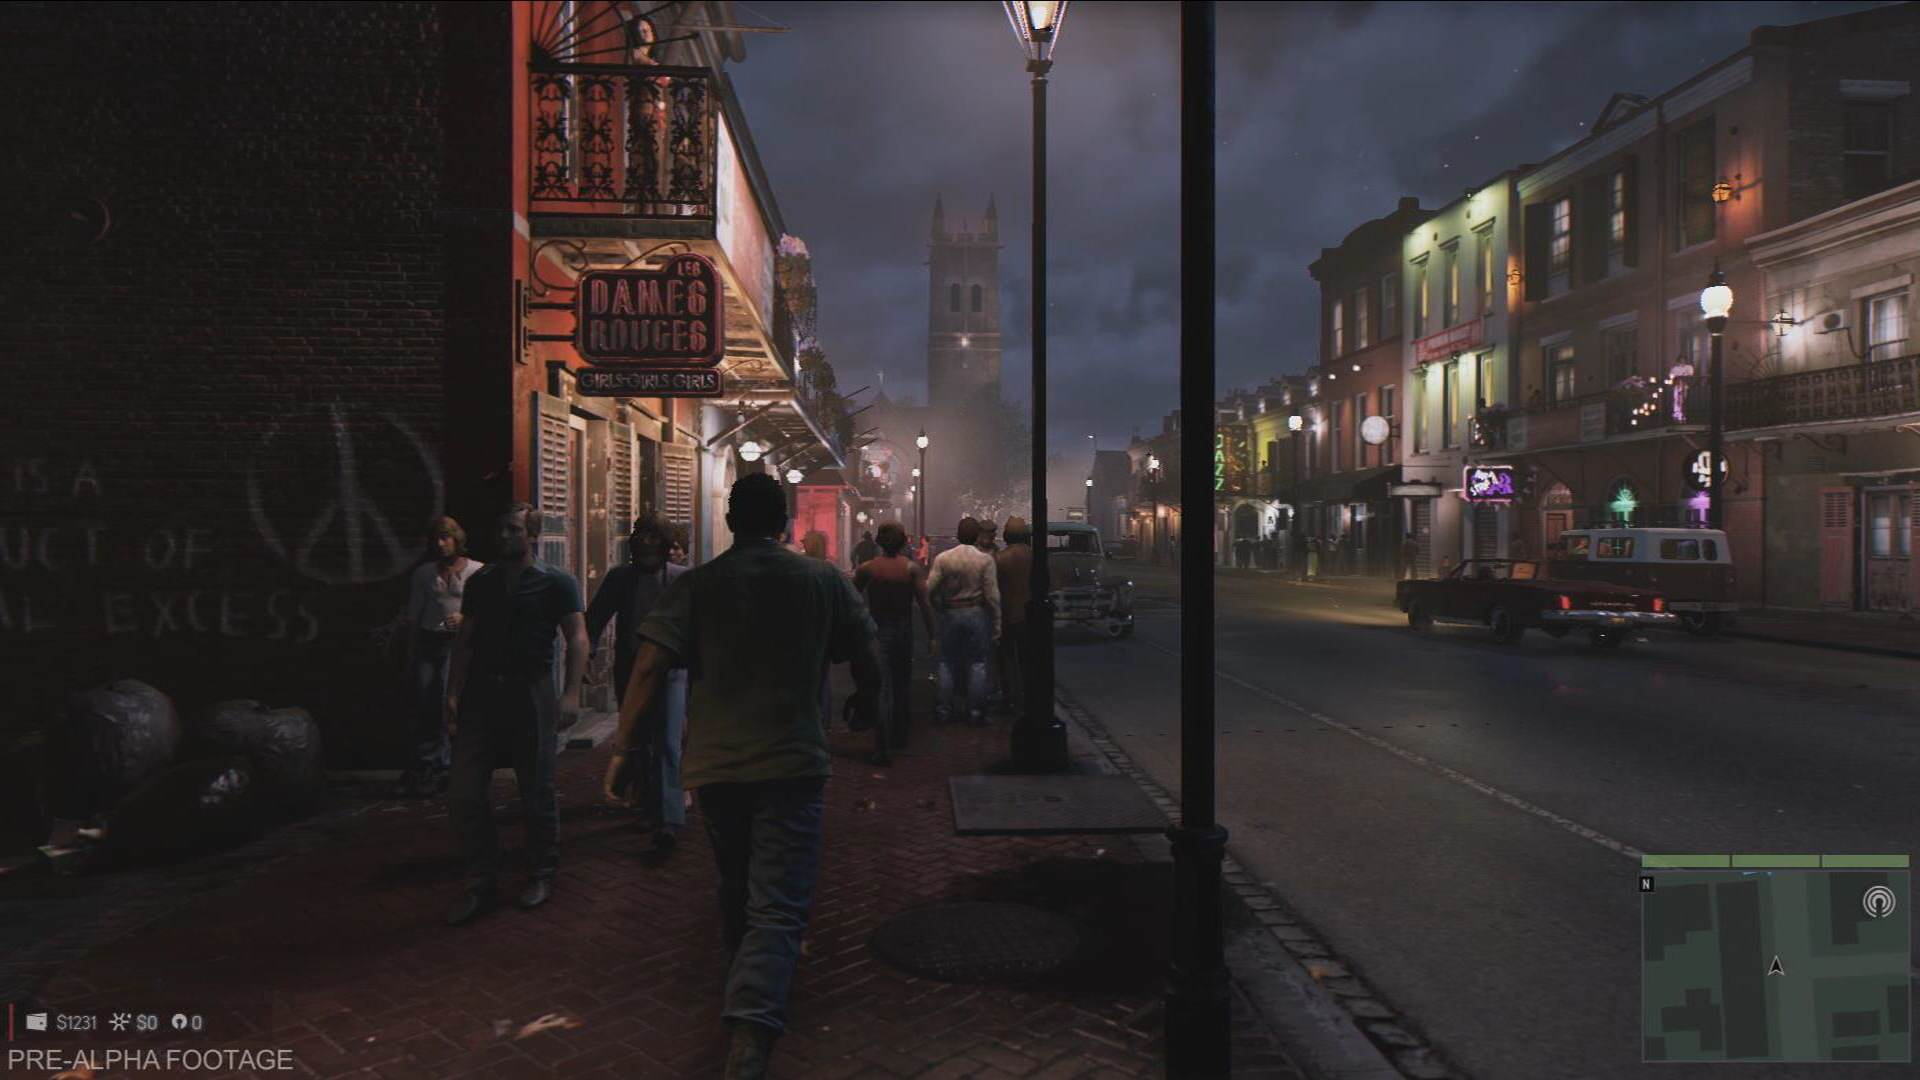 New Mafia 3 Screens Show Off The Games Impressive World 1 YrpVfz3